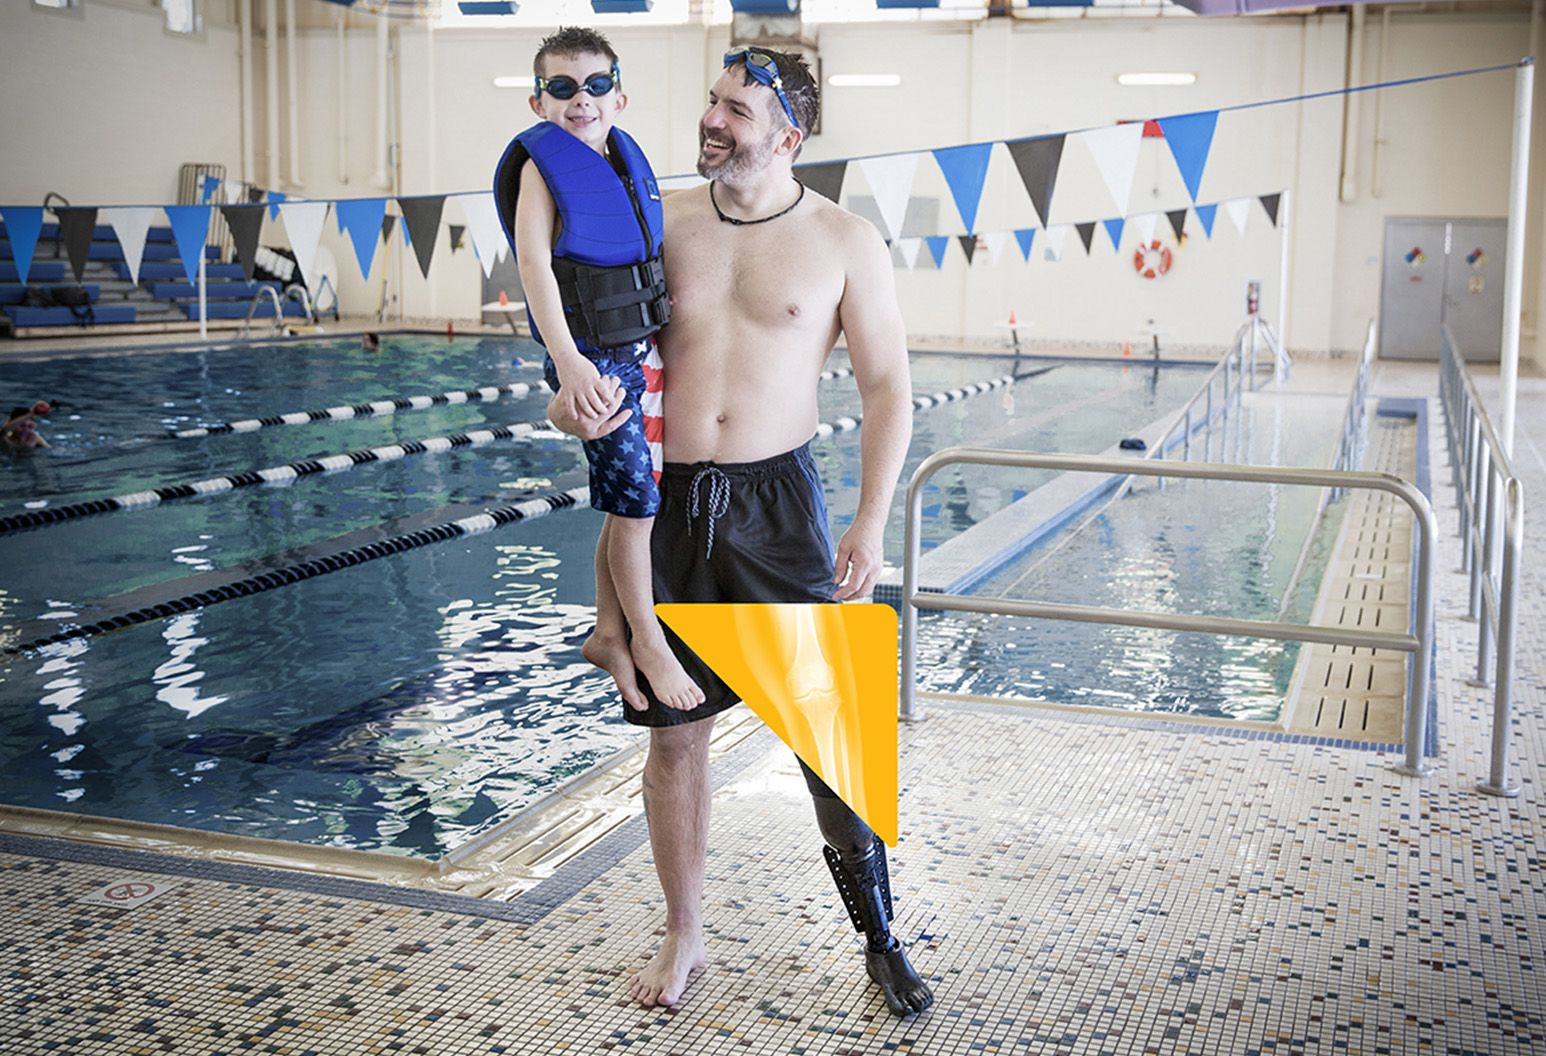 Man with prosthetic leg is standing on diving board getting ready to dive into a pool. Innovation helped him dive into life